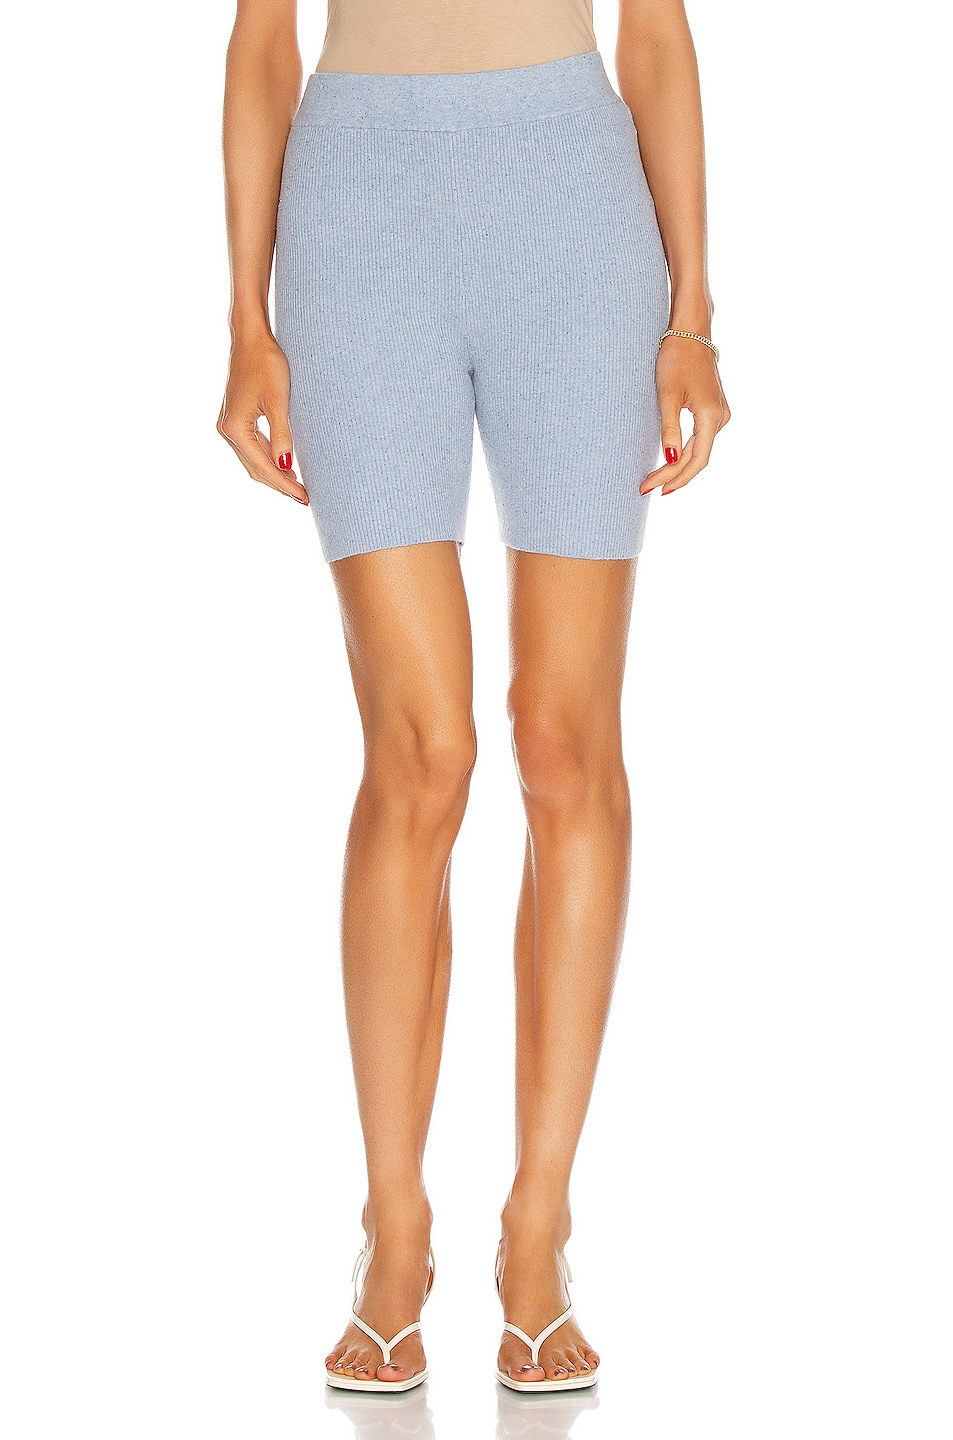 Image 1 of JoosTricot Bike Shorts in Edgewater